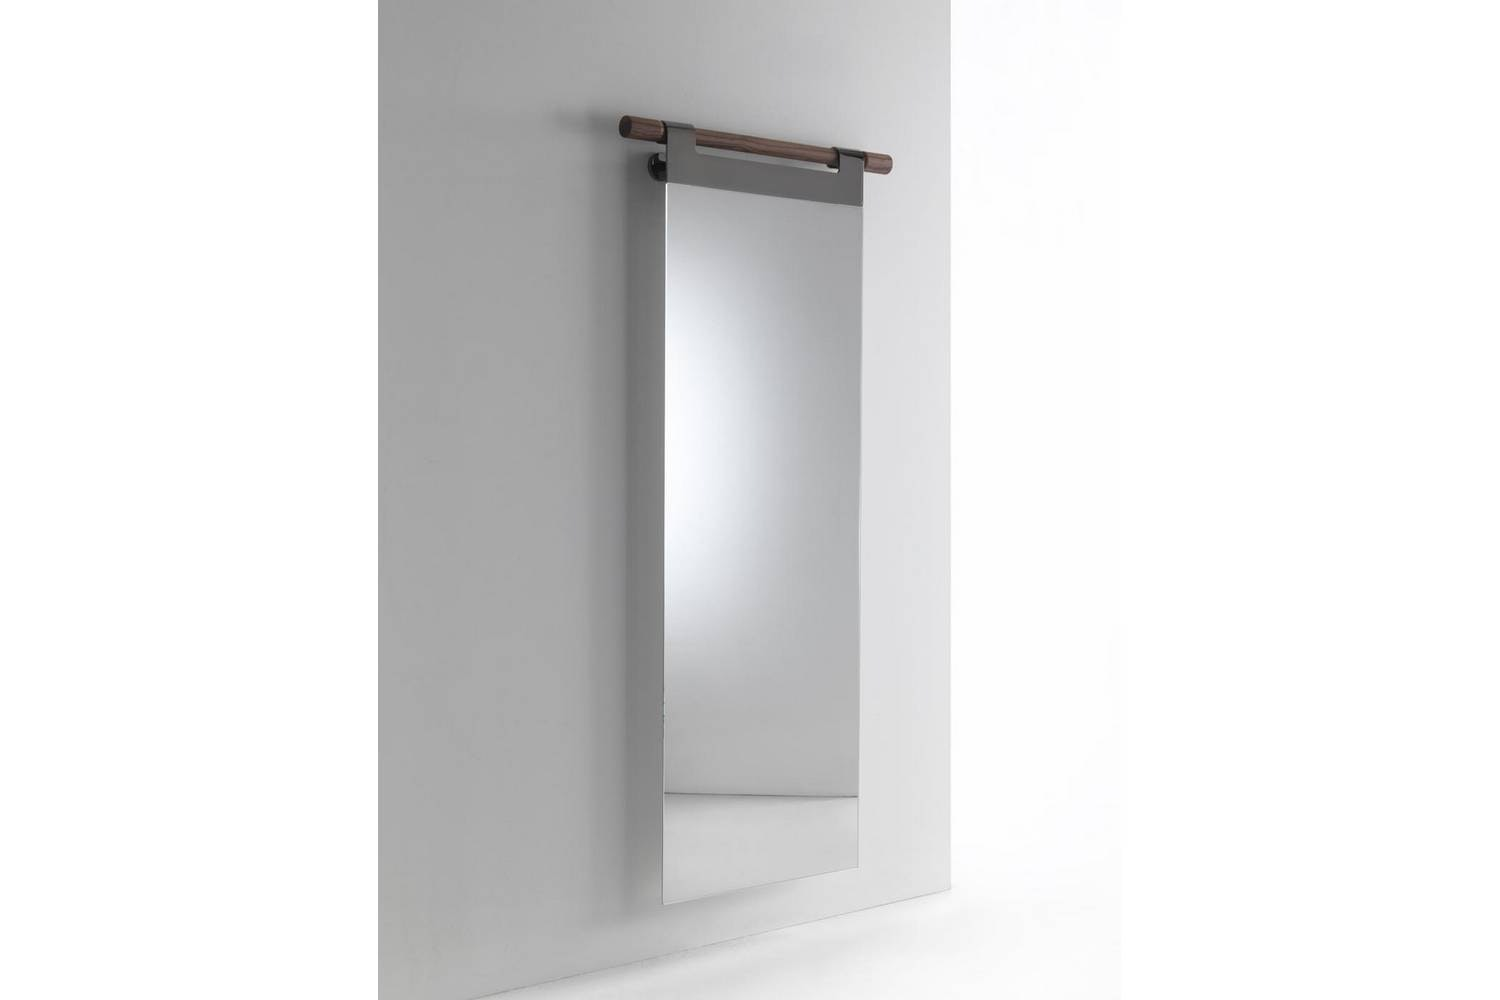 Hook Mirror by L. de Limburg Stirum for Porada